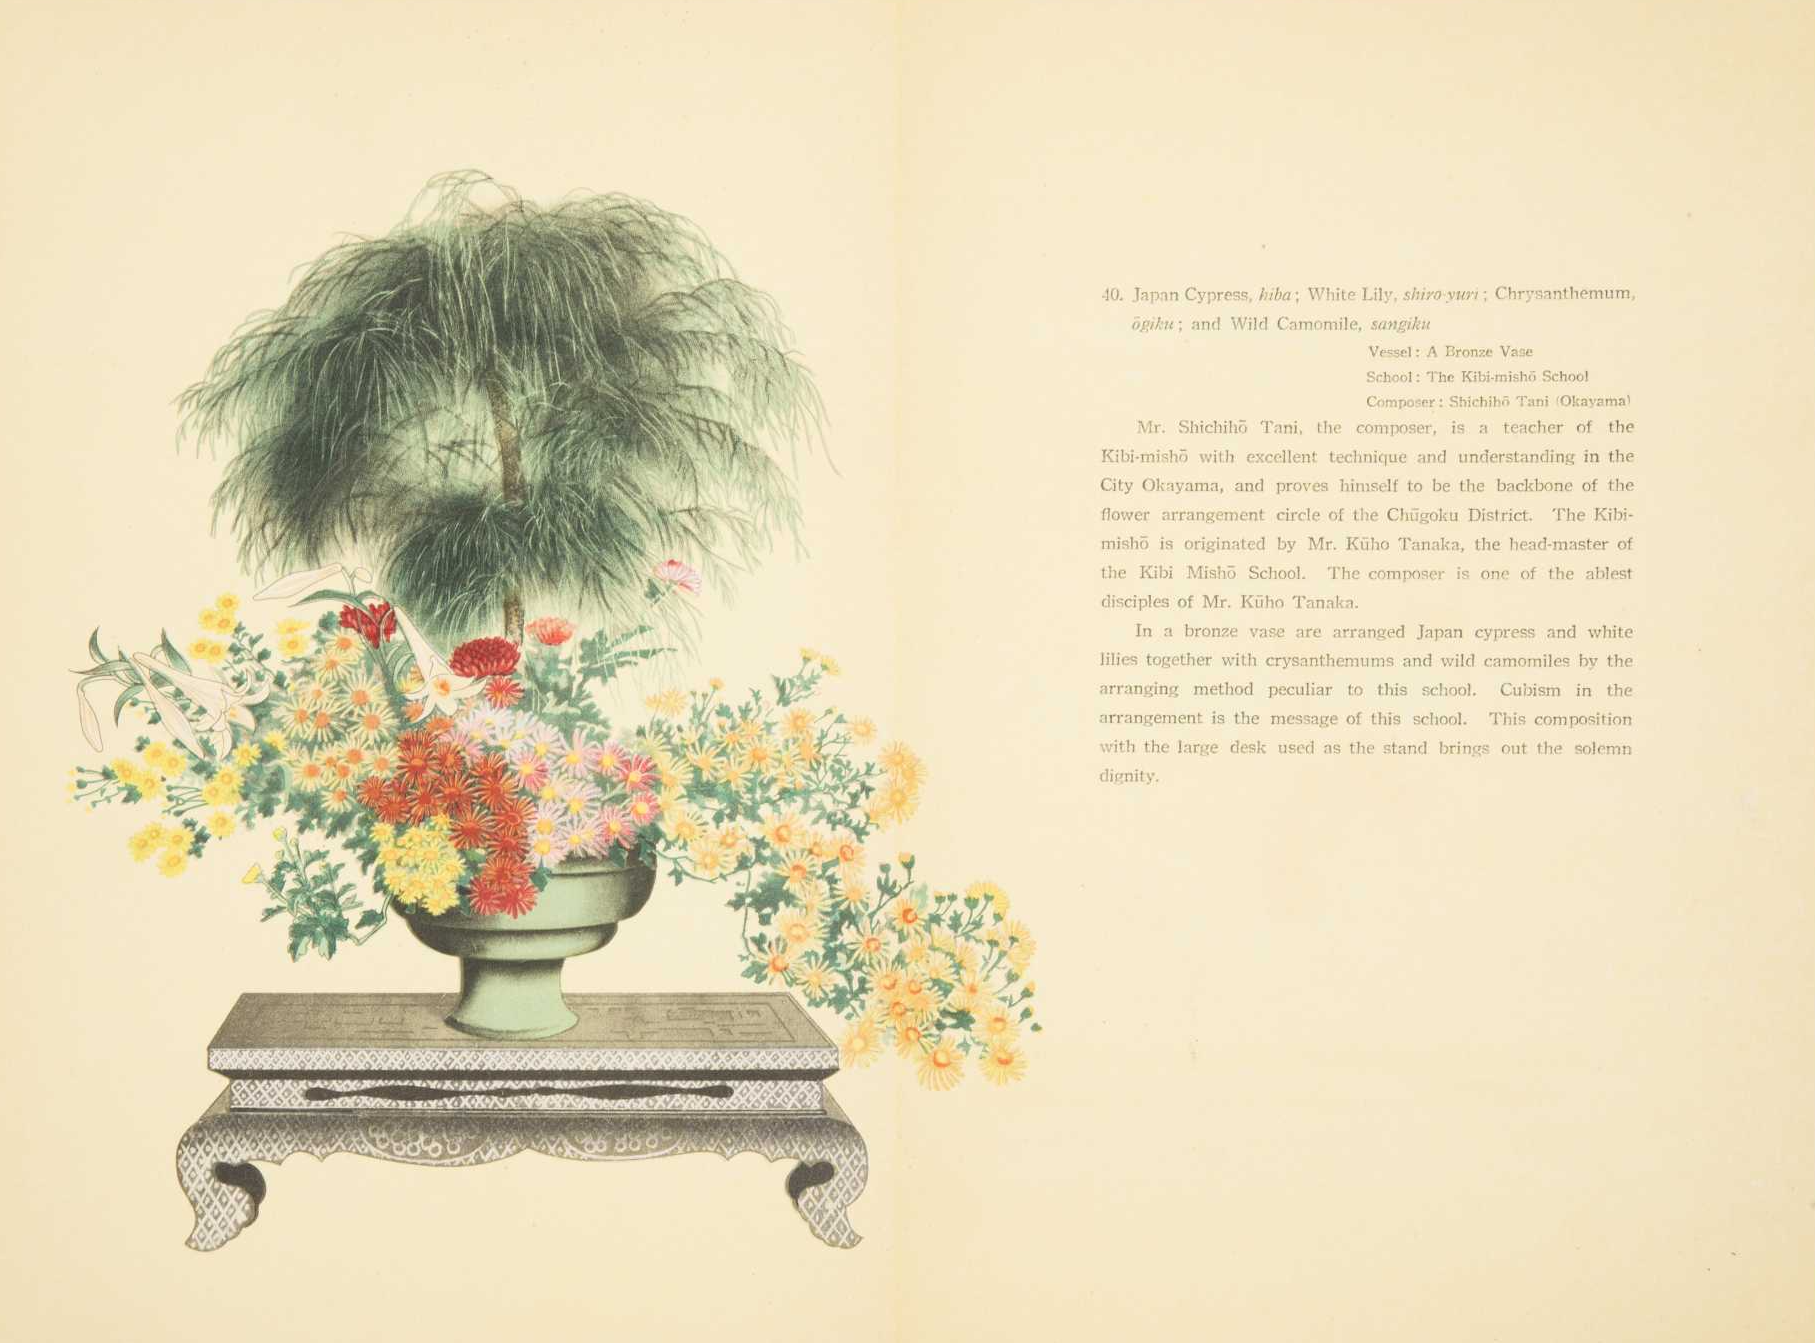 Select Flower Arrangements of Moribana & Heikwa. Edited by Kasuke Murakami, Explained by Mitsuharu Hashizume.  Printed and made in Japan by Jigyokudo Yamanaka & Co. Inc. 1936  http://www.thecobbs.com/auction-2017-01-14-lot-84A.html